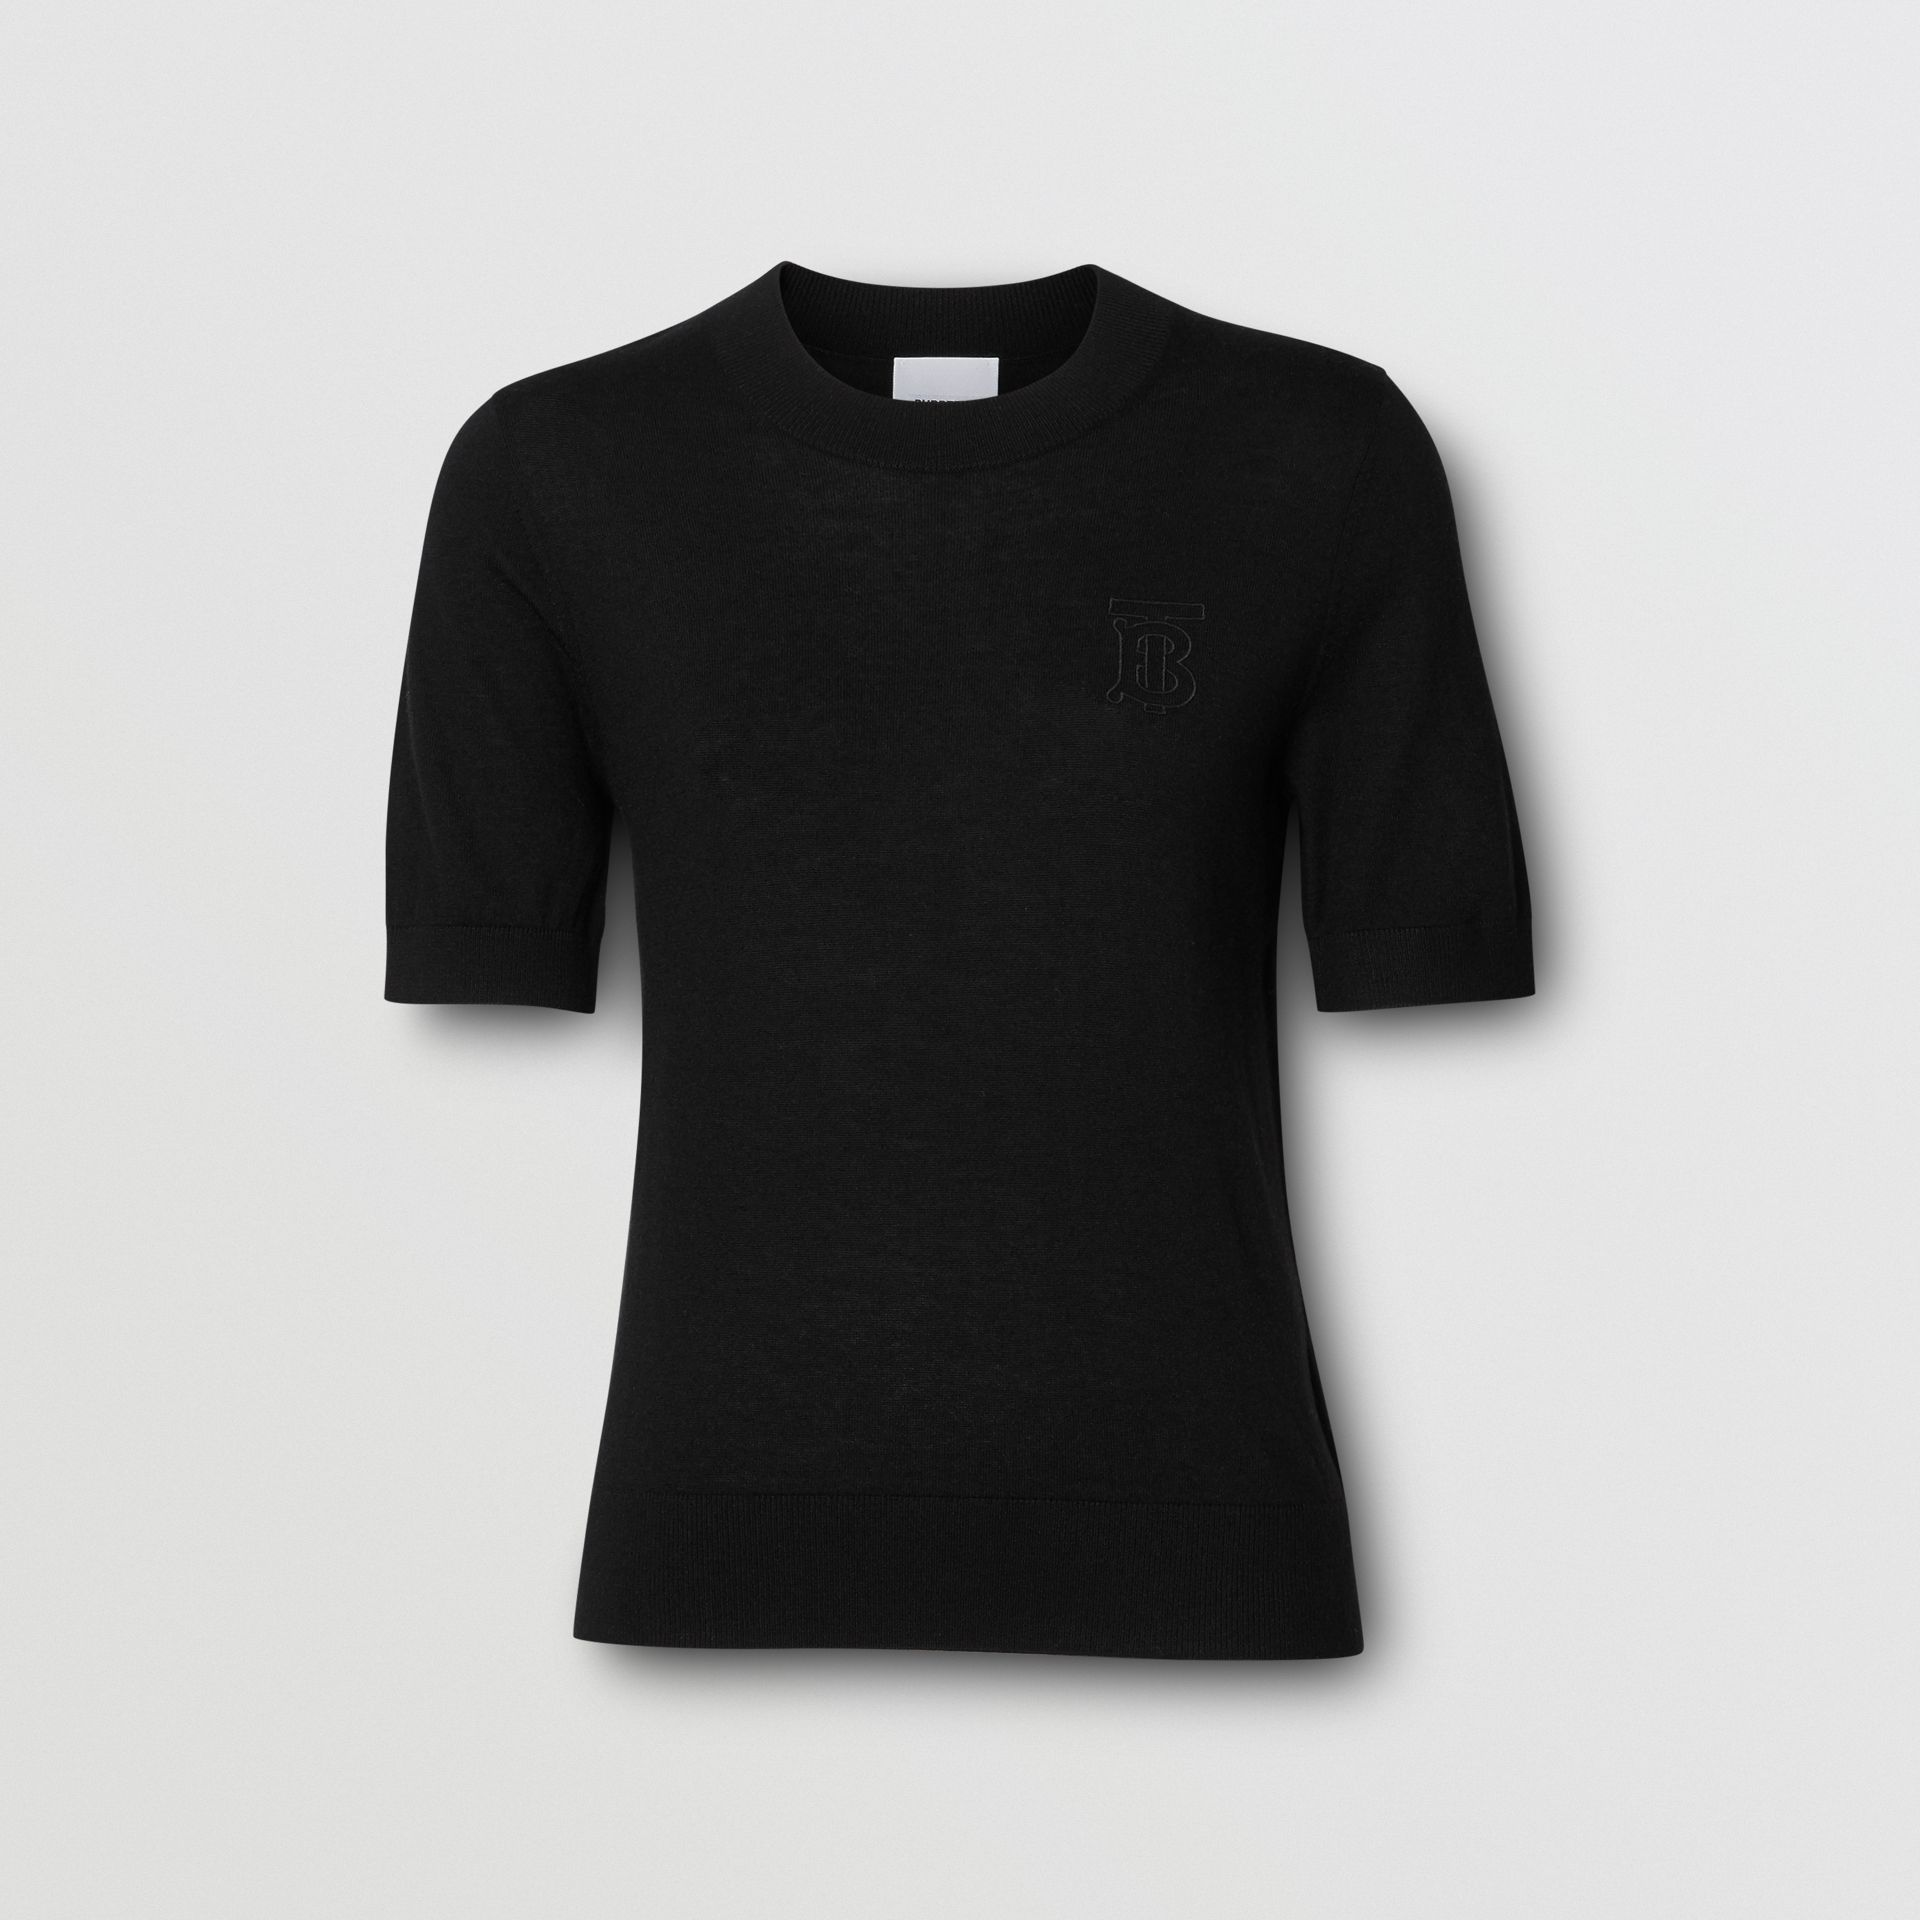 Monogram Motif Cashmere Top in Black - Women | Burberry - gallery image 3